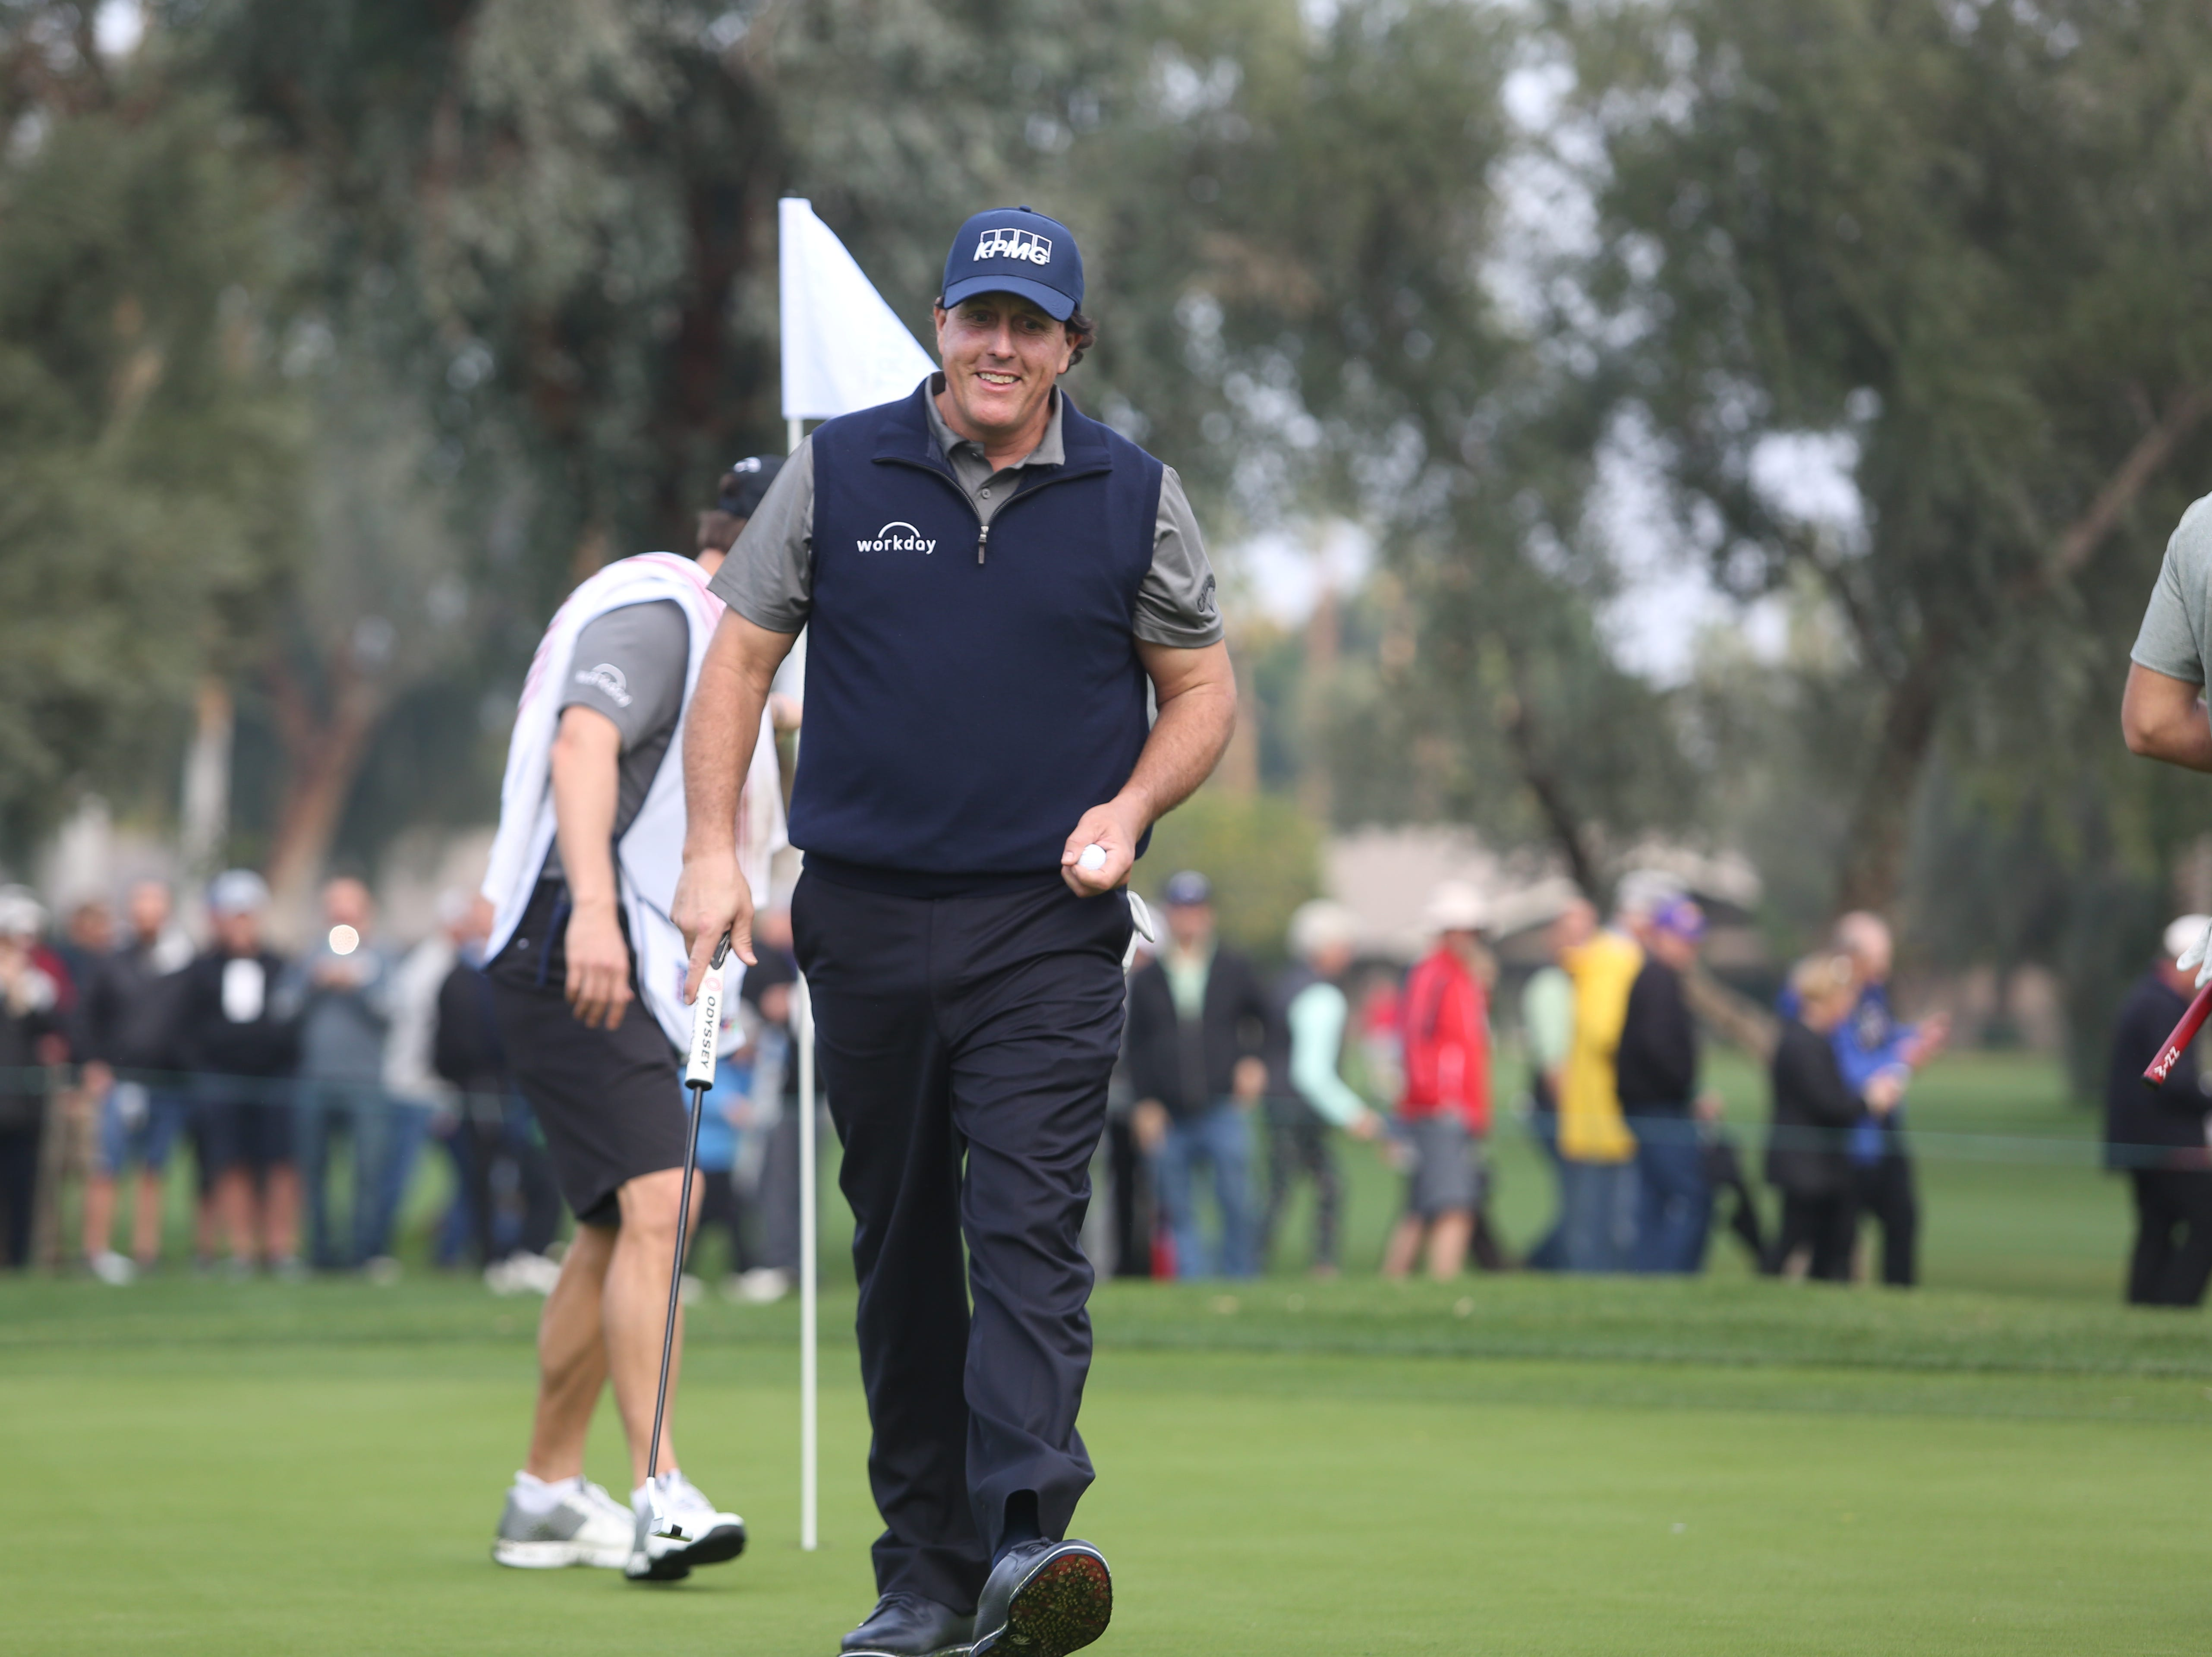 Phil Mickelson smiles after his birdie on 1 at La Quinta County Club during the 1st round of the Desert Classic on Thursday, January 17, 2019. Mickelson leads at the end of the day with 12 under.